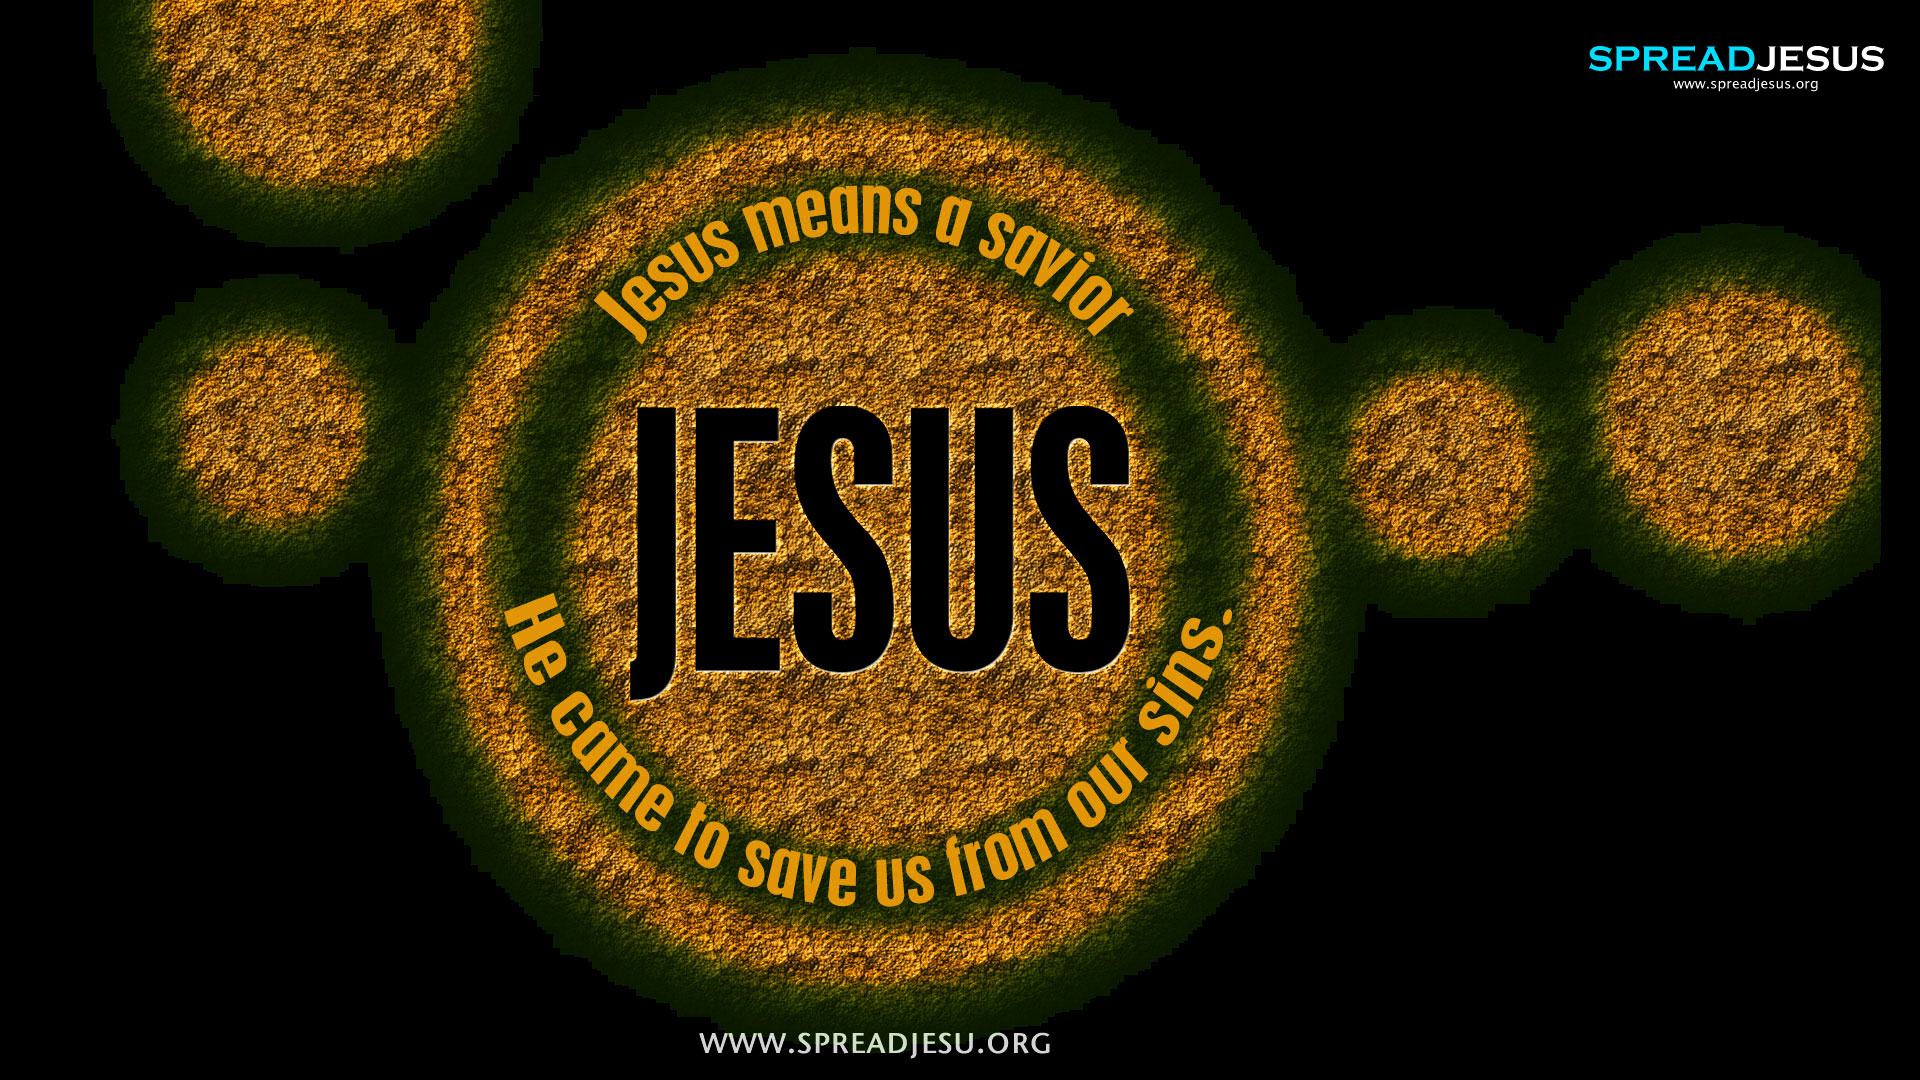 Jesus Means A Savior HD wallpapers free downloading Jesus Means A Savior He came to Save us from our Sins HD wallpaper 2 VIEW AND DOWNLOAD